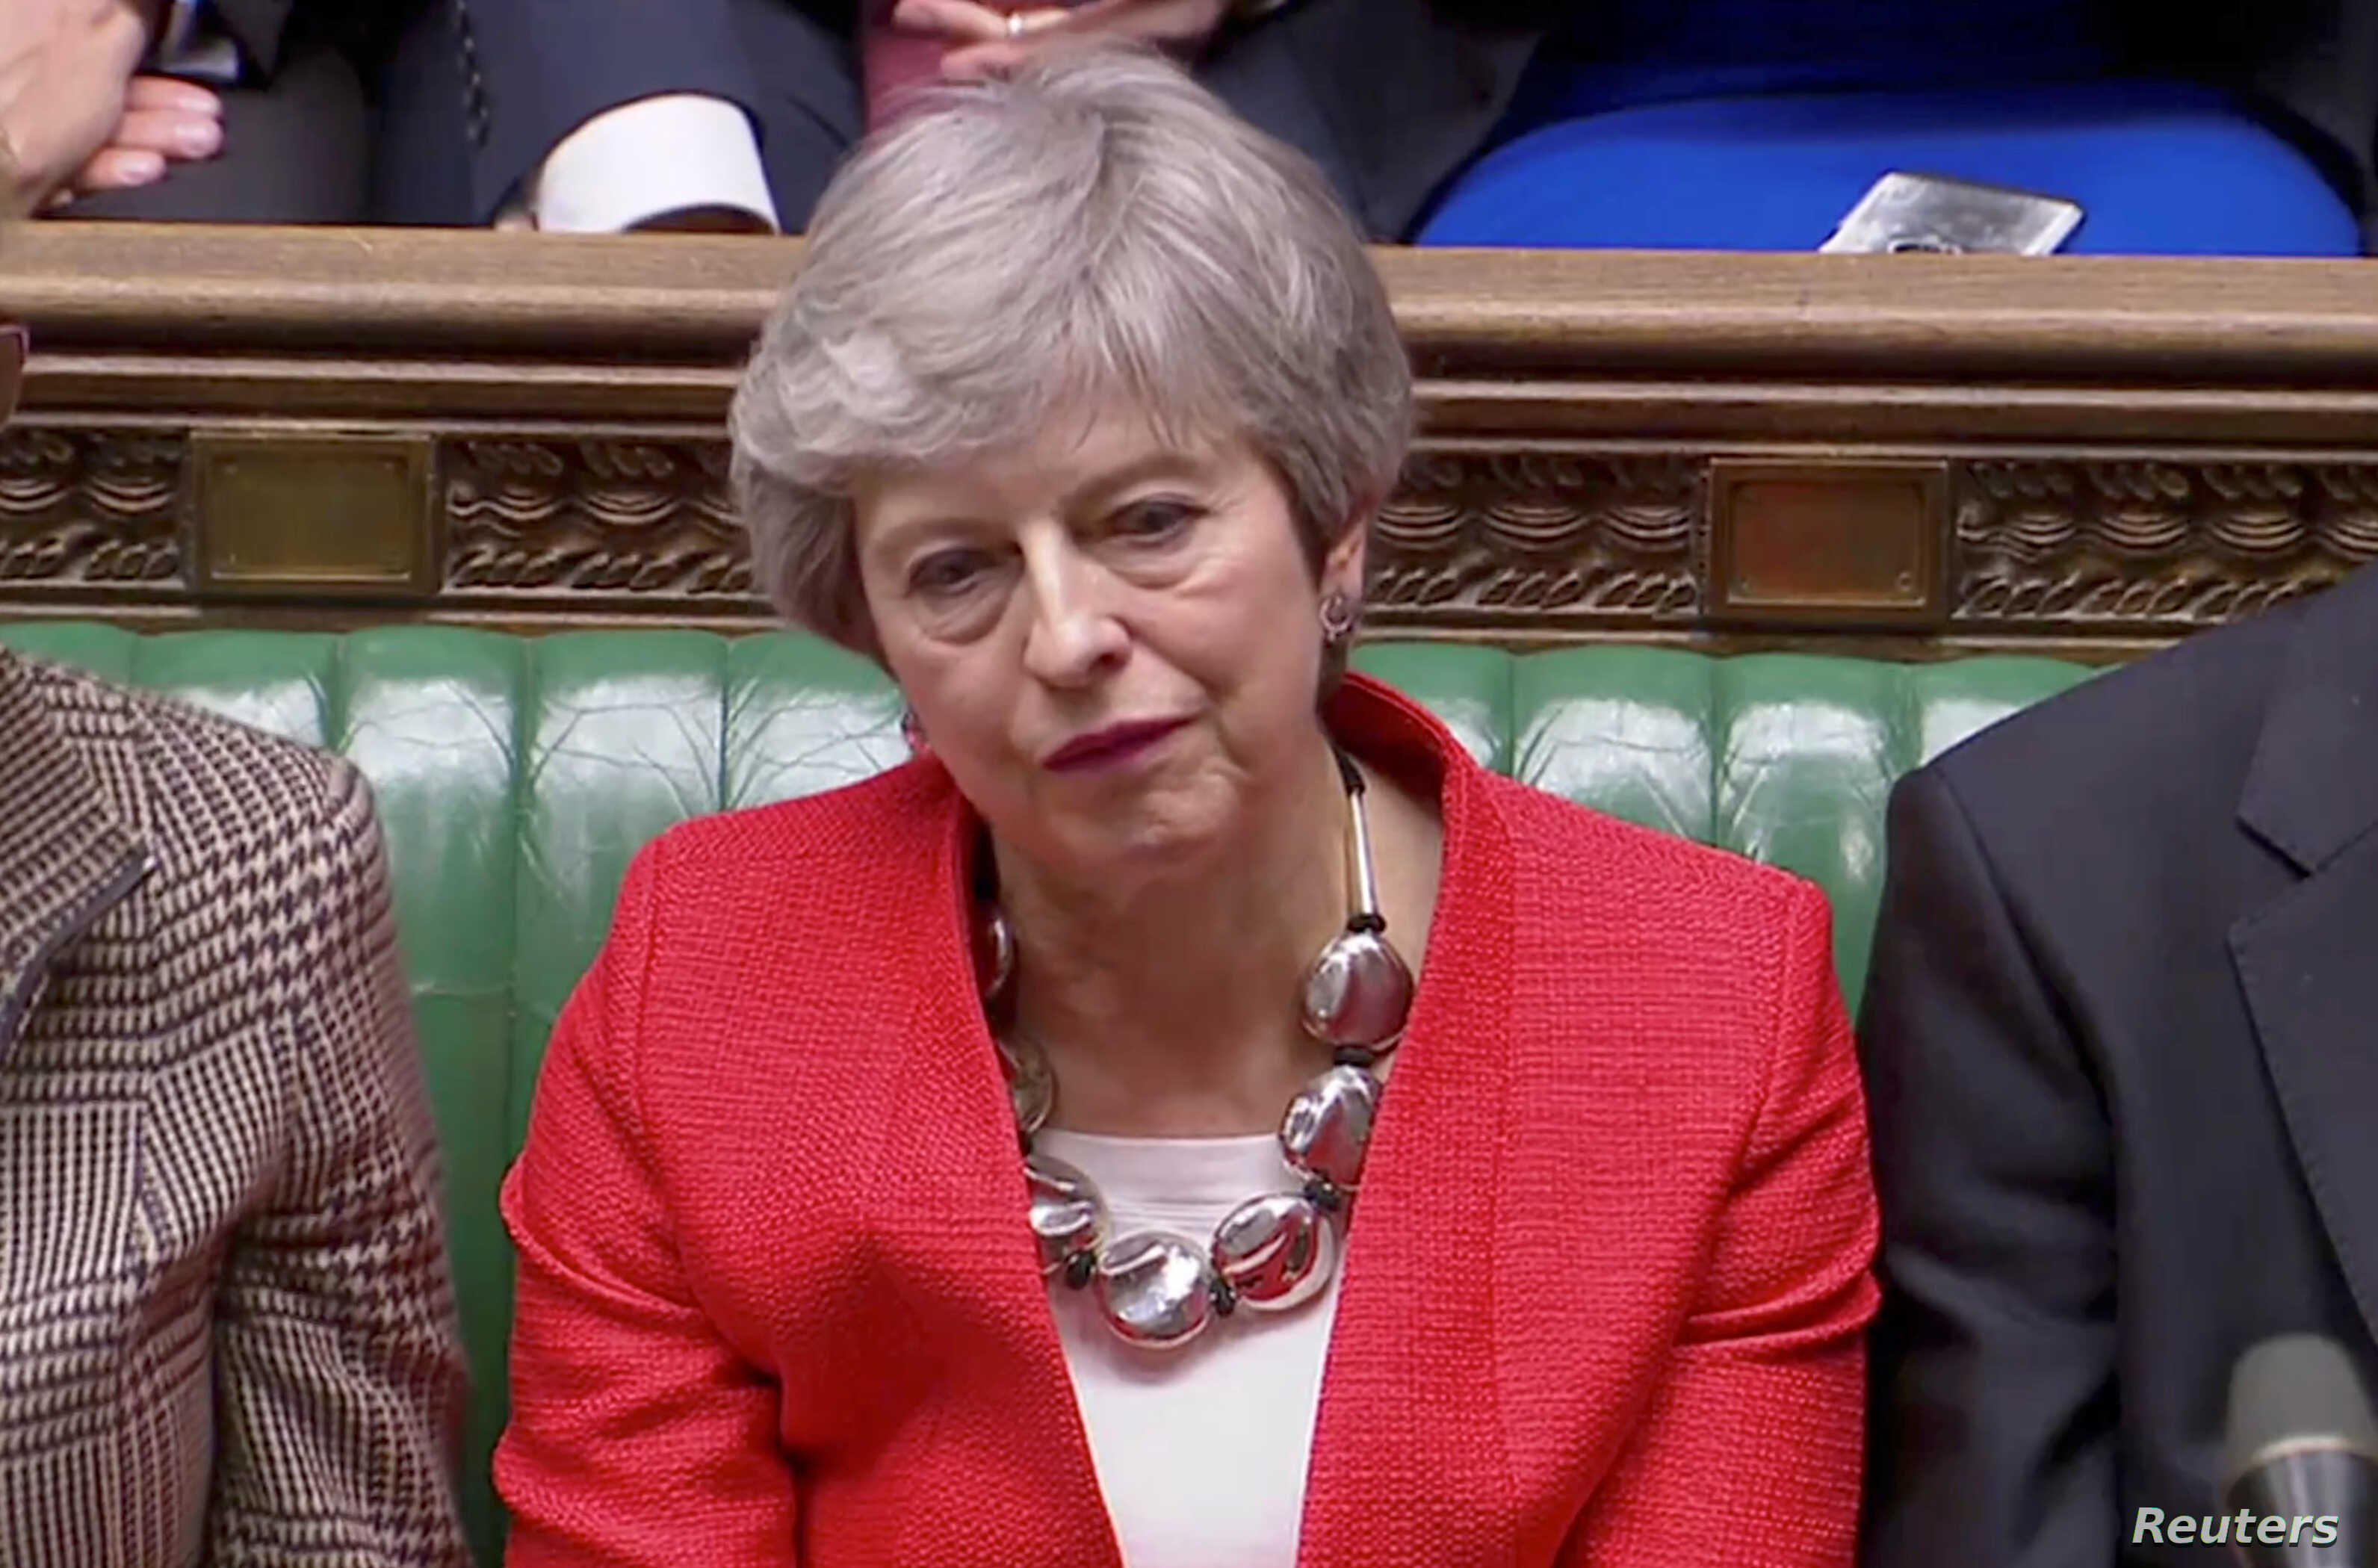 British Prime Minister Theresa May reacts after tellers announced the results of the vote Brexit deal in Parliament in London, Britain, March 12, 2019, in this screen grab taken from video.